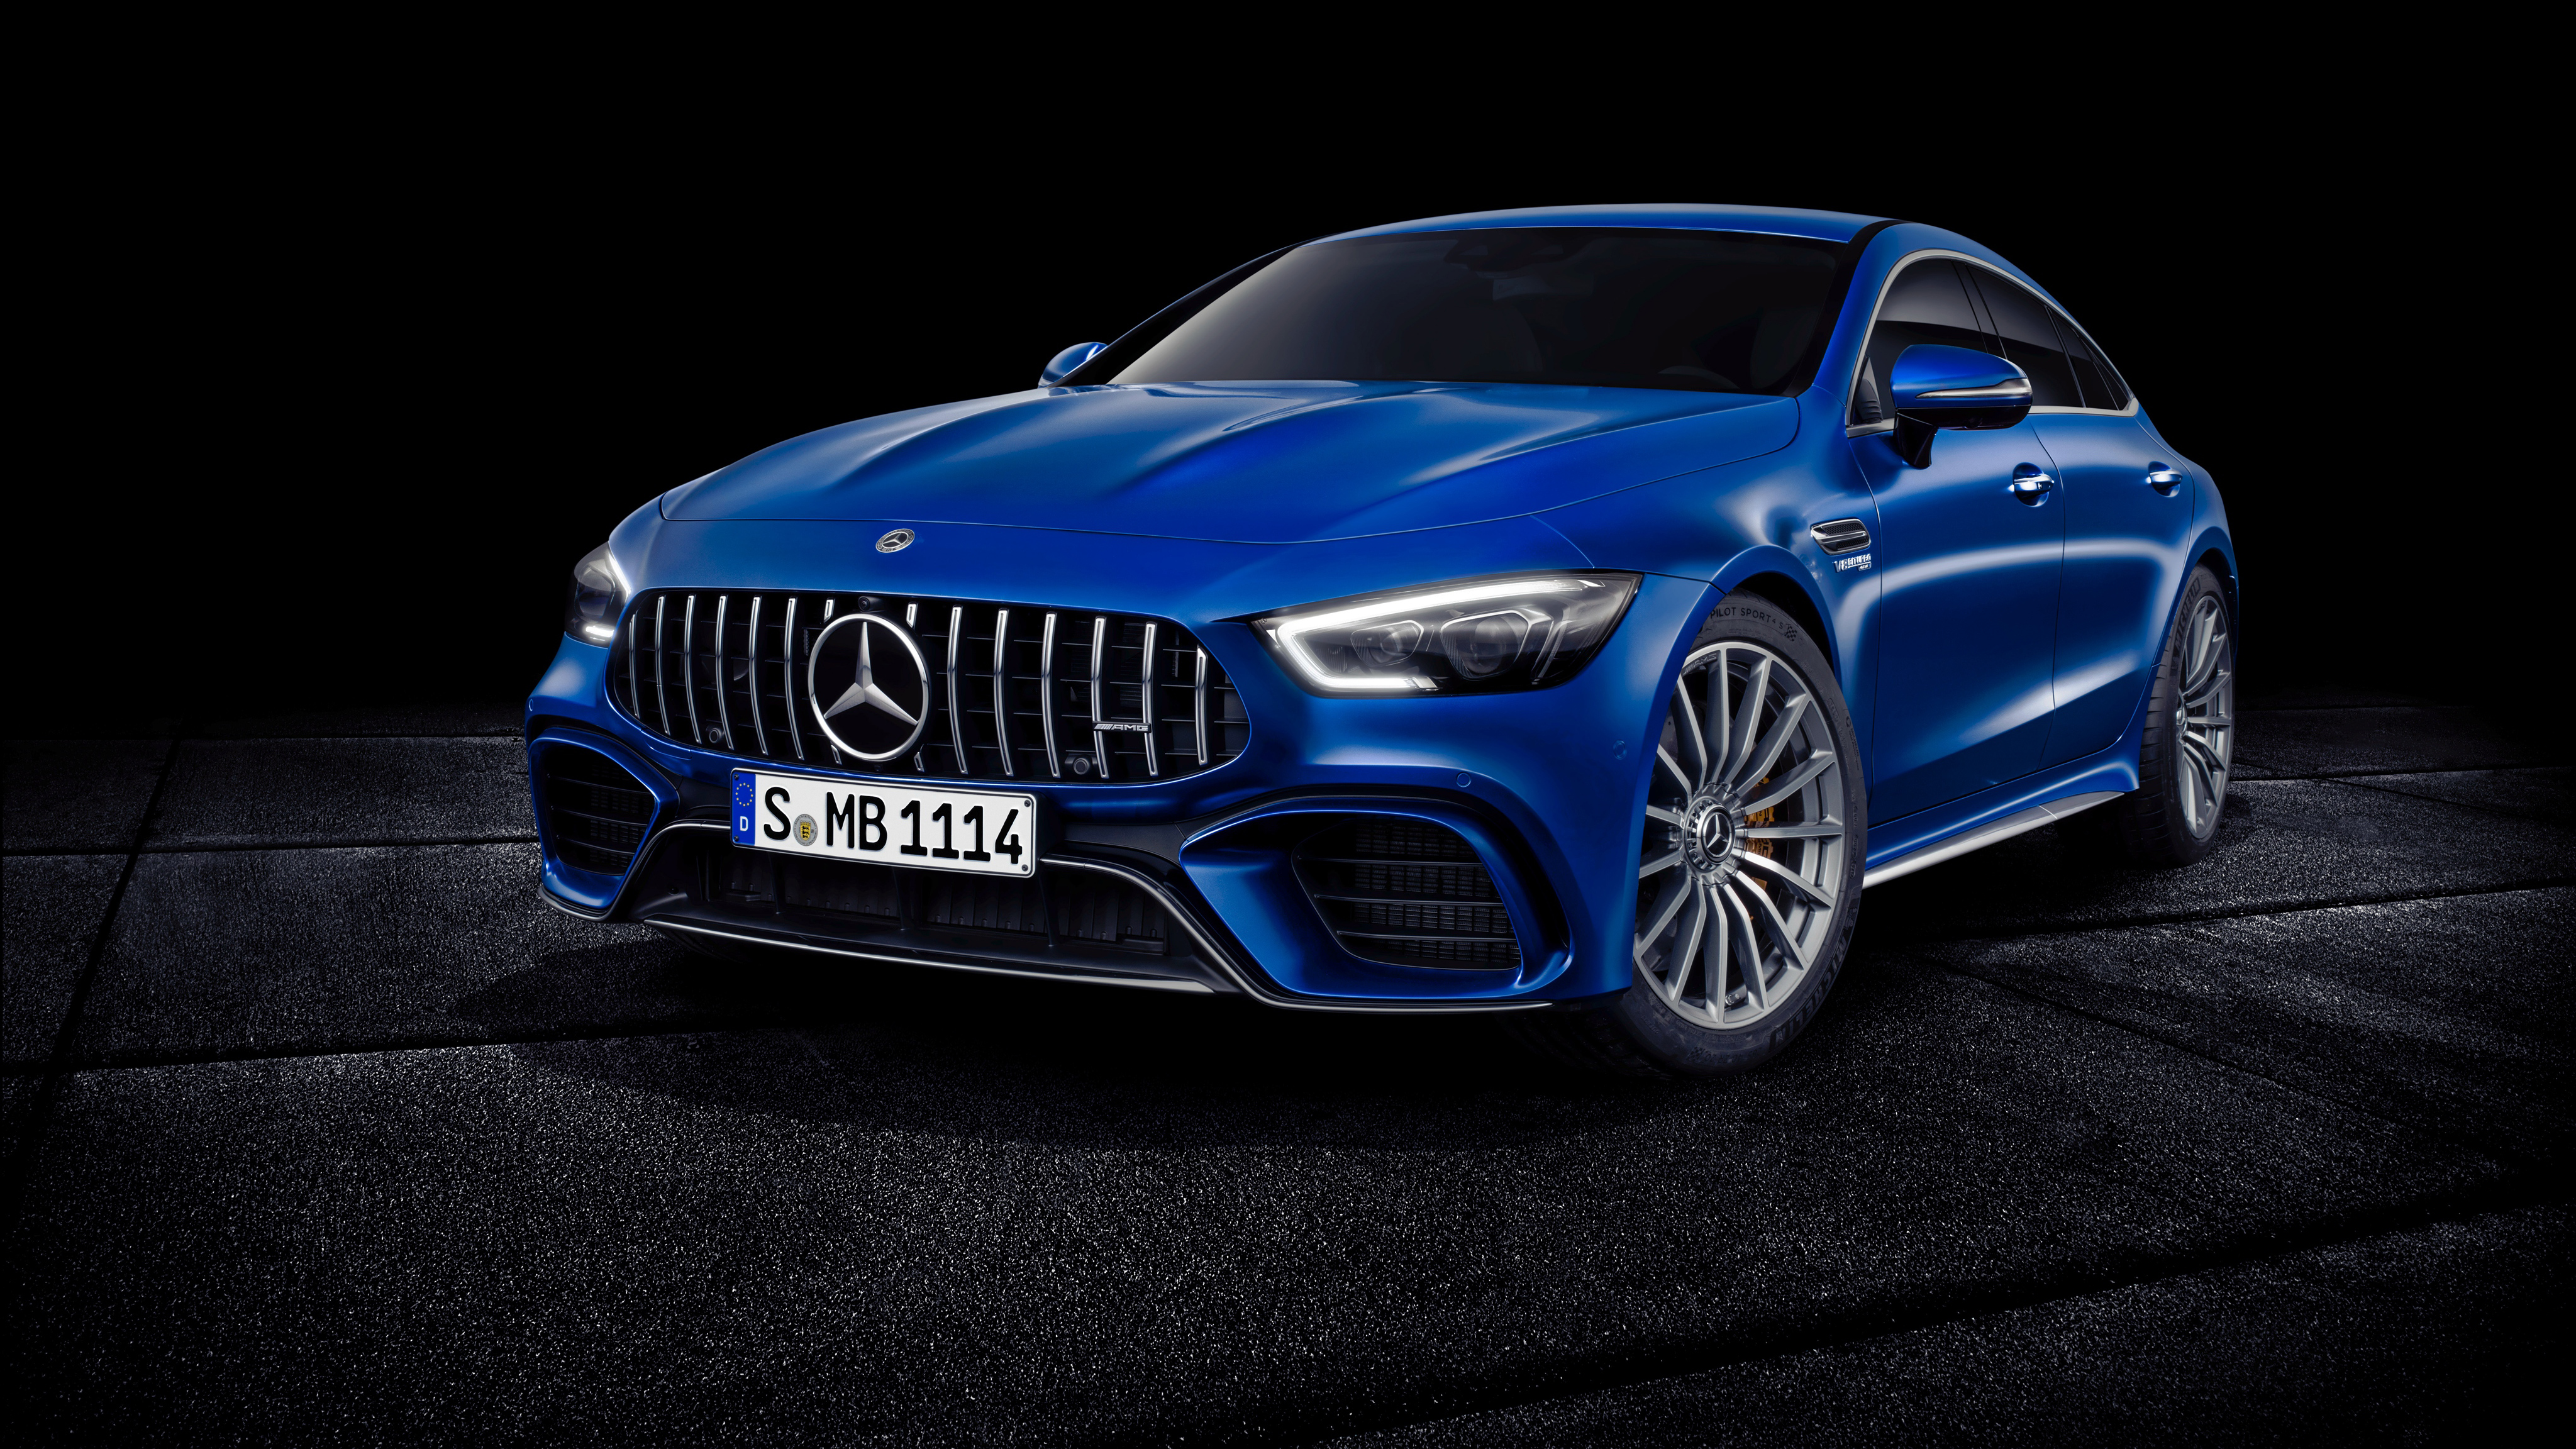 2018 mercedes amg gt 63 s 4matic 4door coupe 4k 3 wallpaper hd car wallpapers id 9920. Black Bedroom Furniture Sets. Home Design Ideas